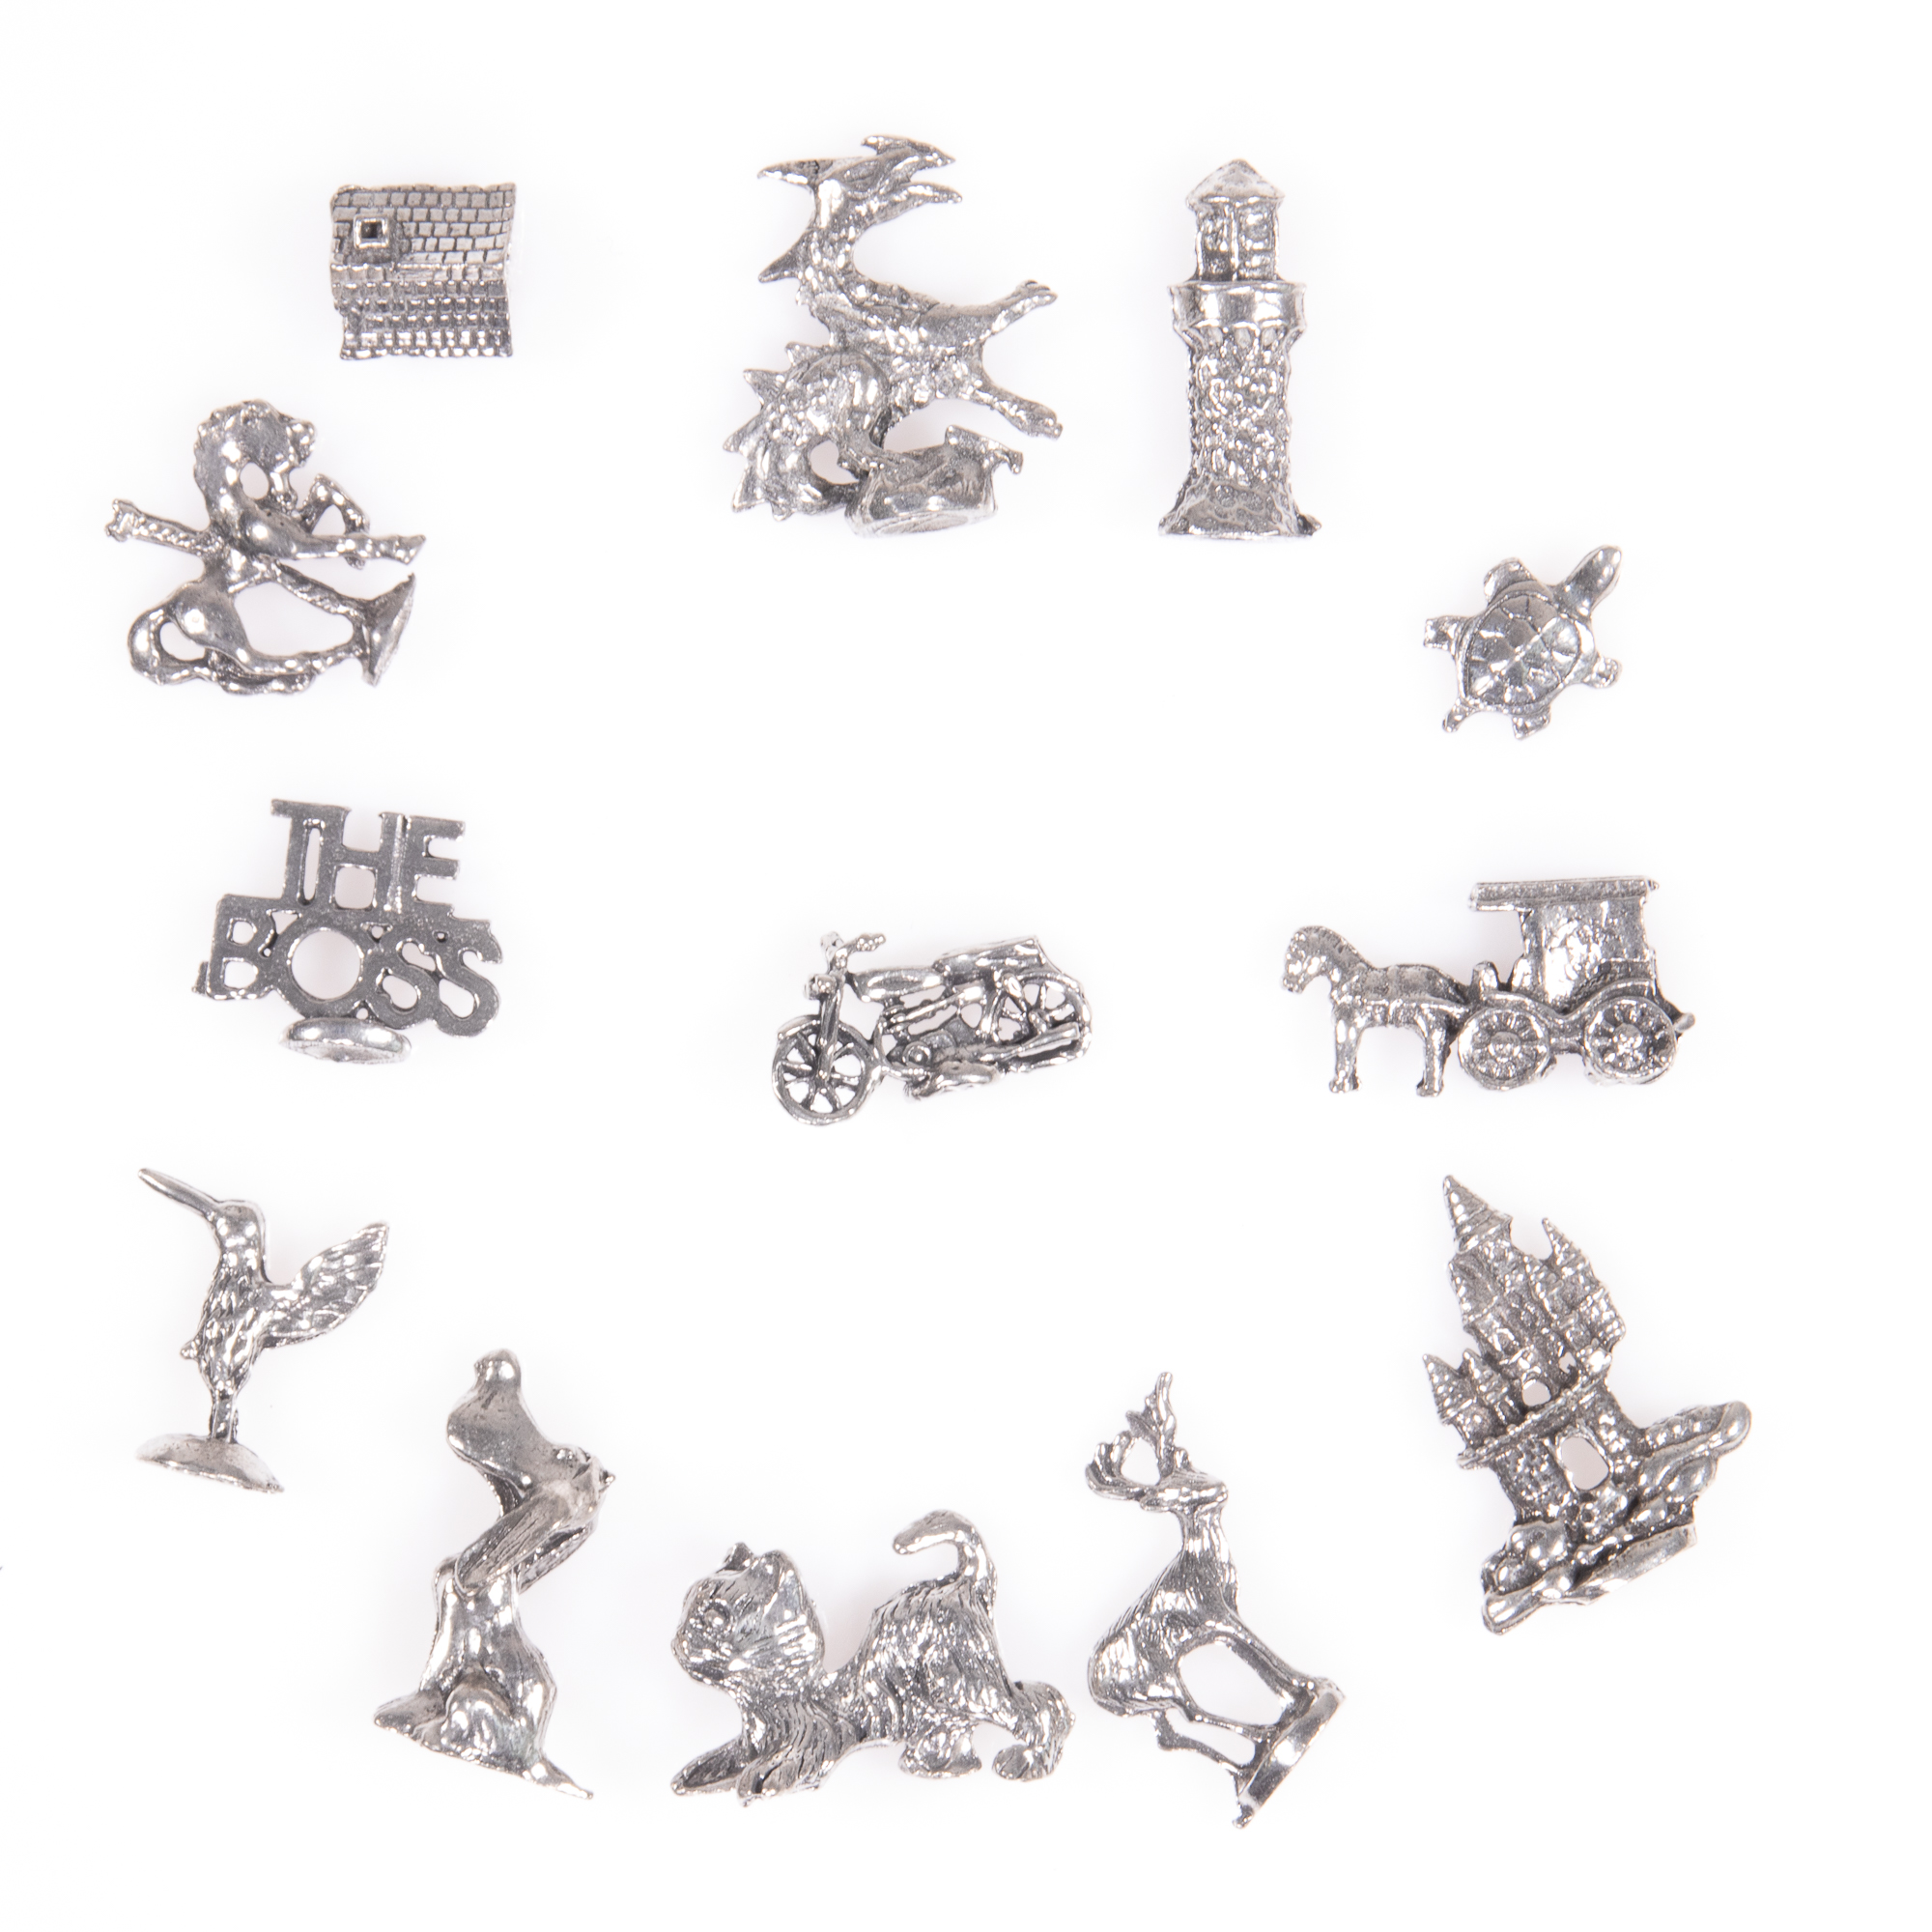 Selection of 13x Silver Novelty Charms - Image 6 of 6